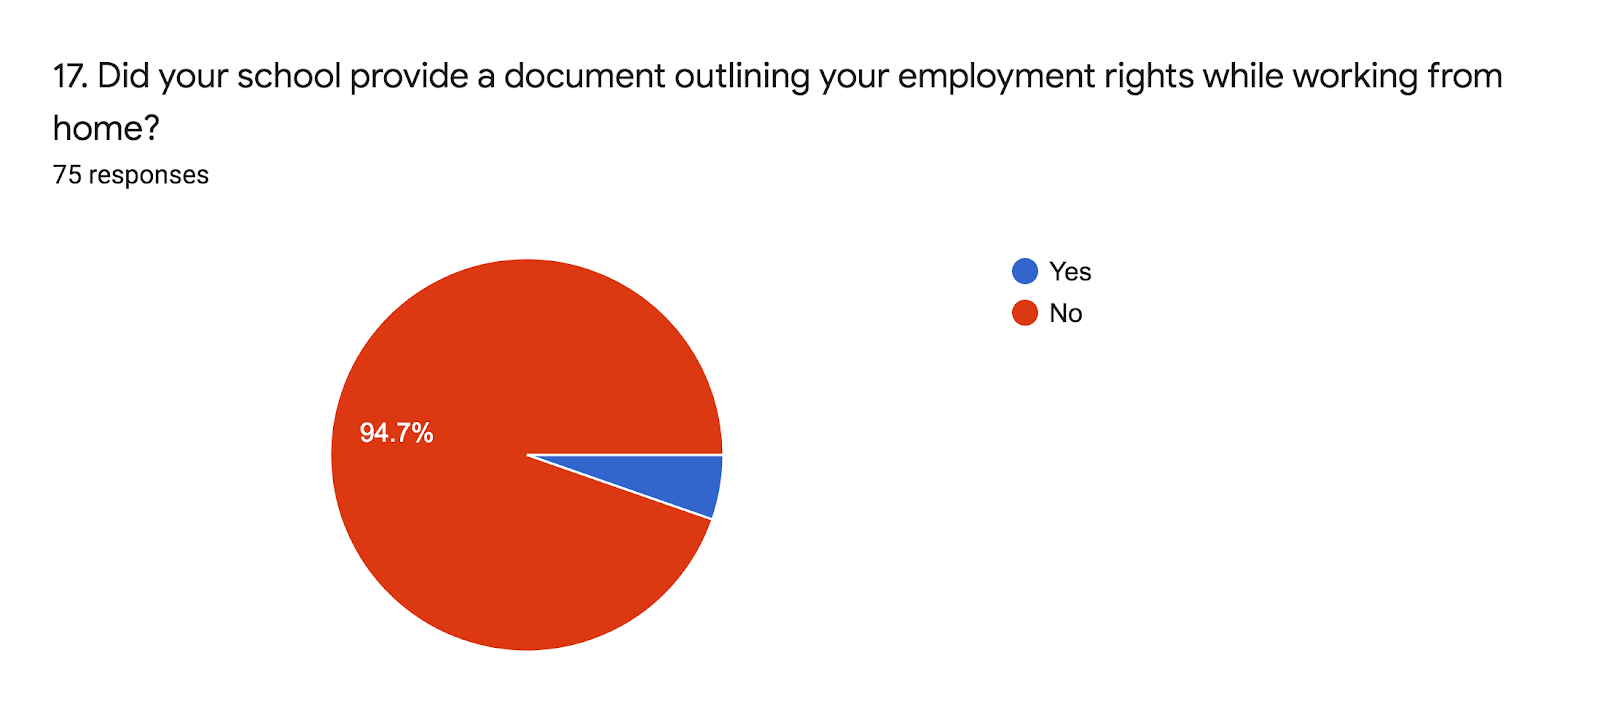 Forms response chart. Question title: 17. Did your school provide a document outlining your employment rights while working from home?   . Number of responses: 75 responses.